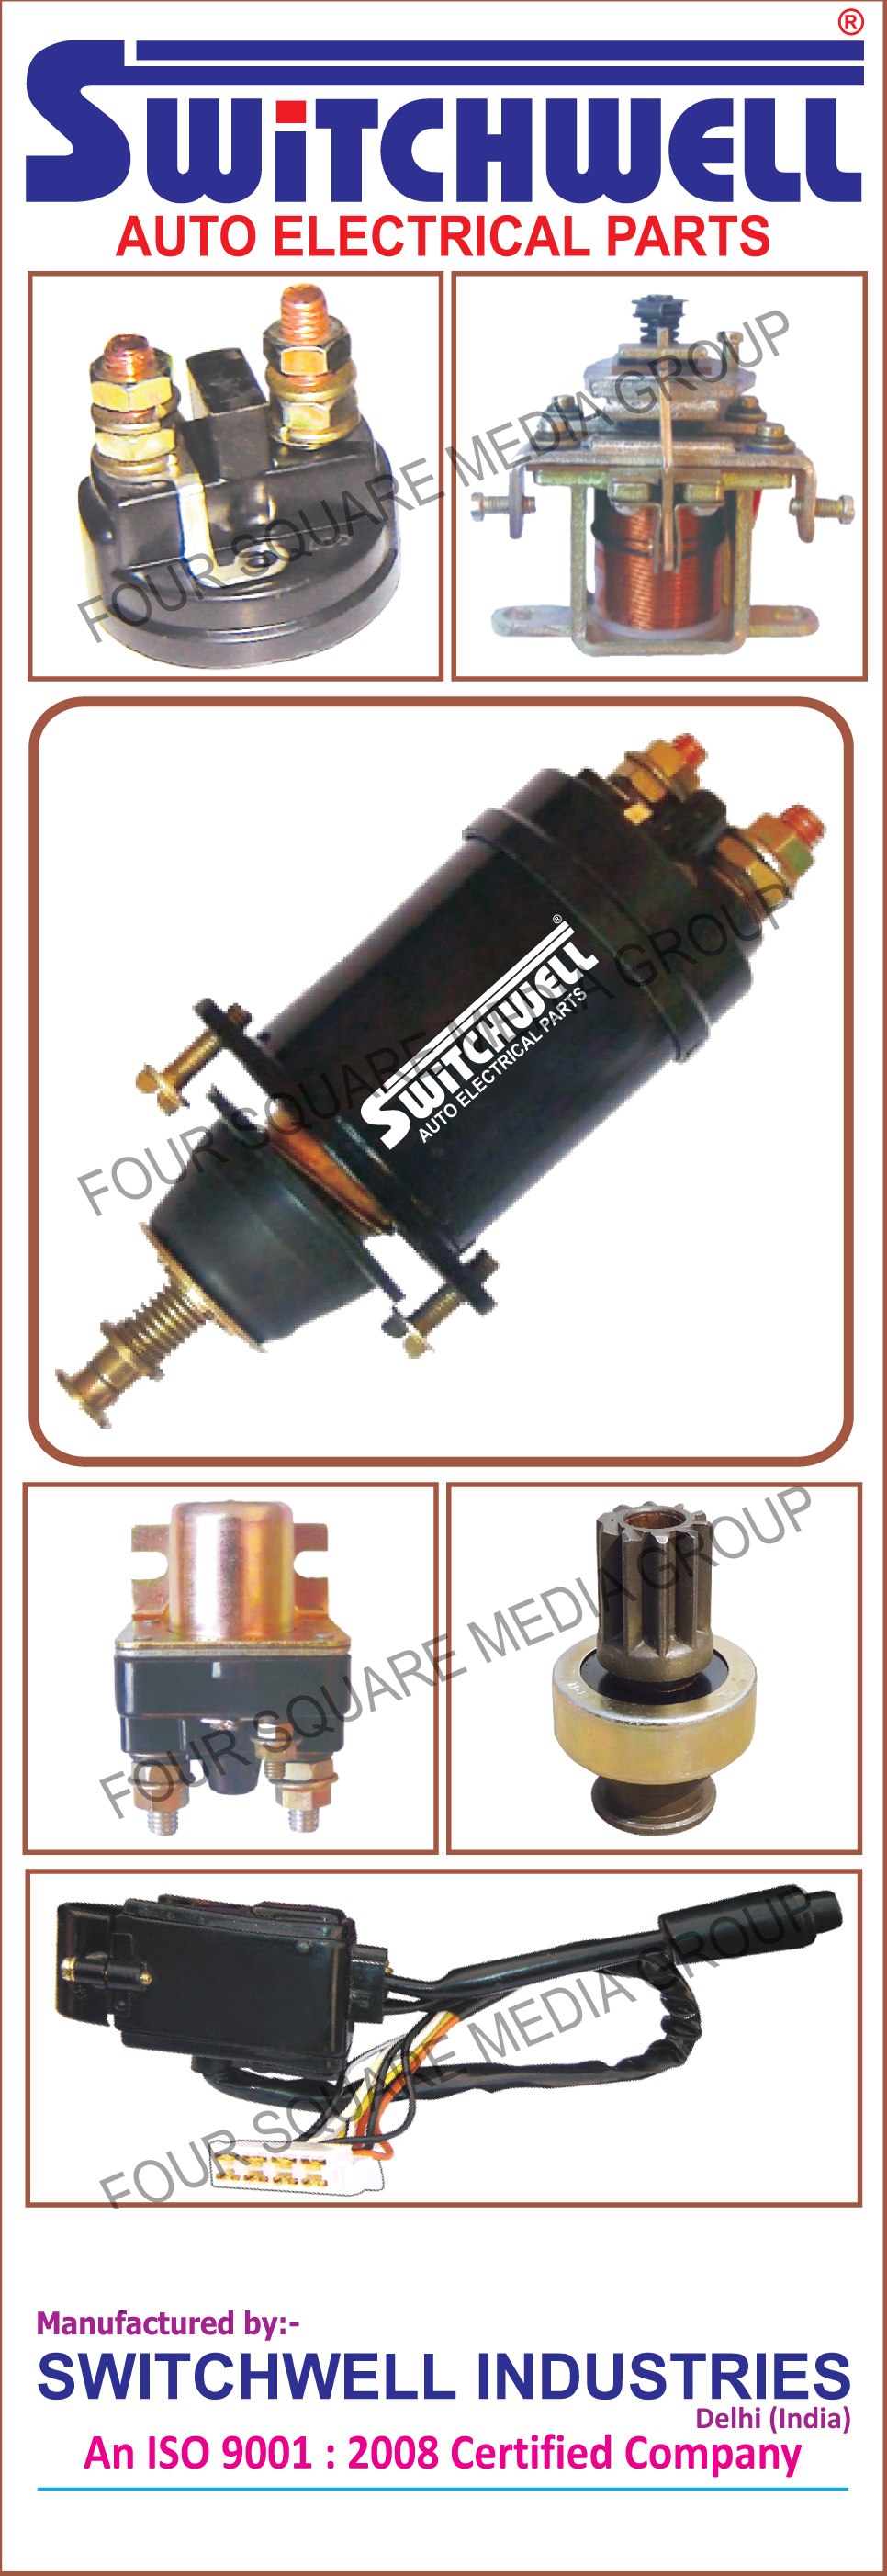 Auto Electrical Parts - Switchwell Industries, Manufacturers in Delhi